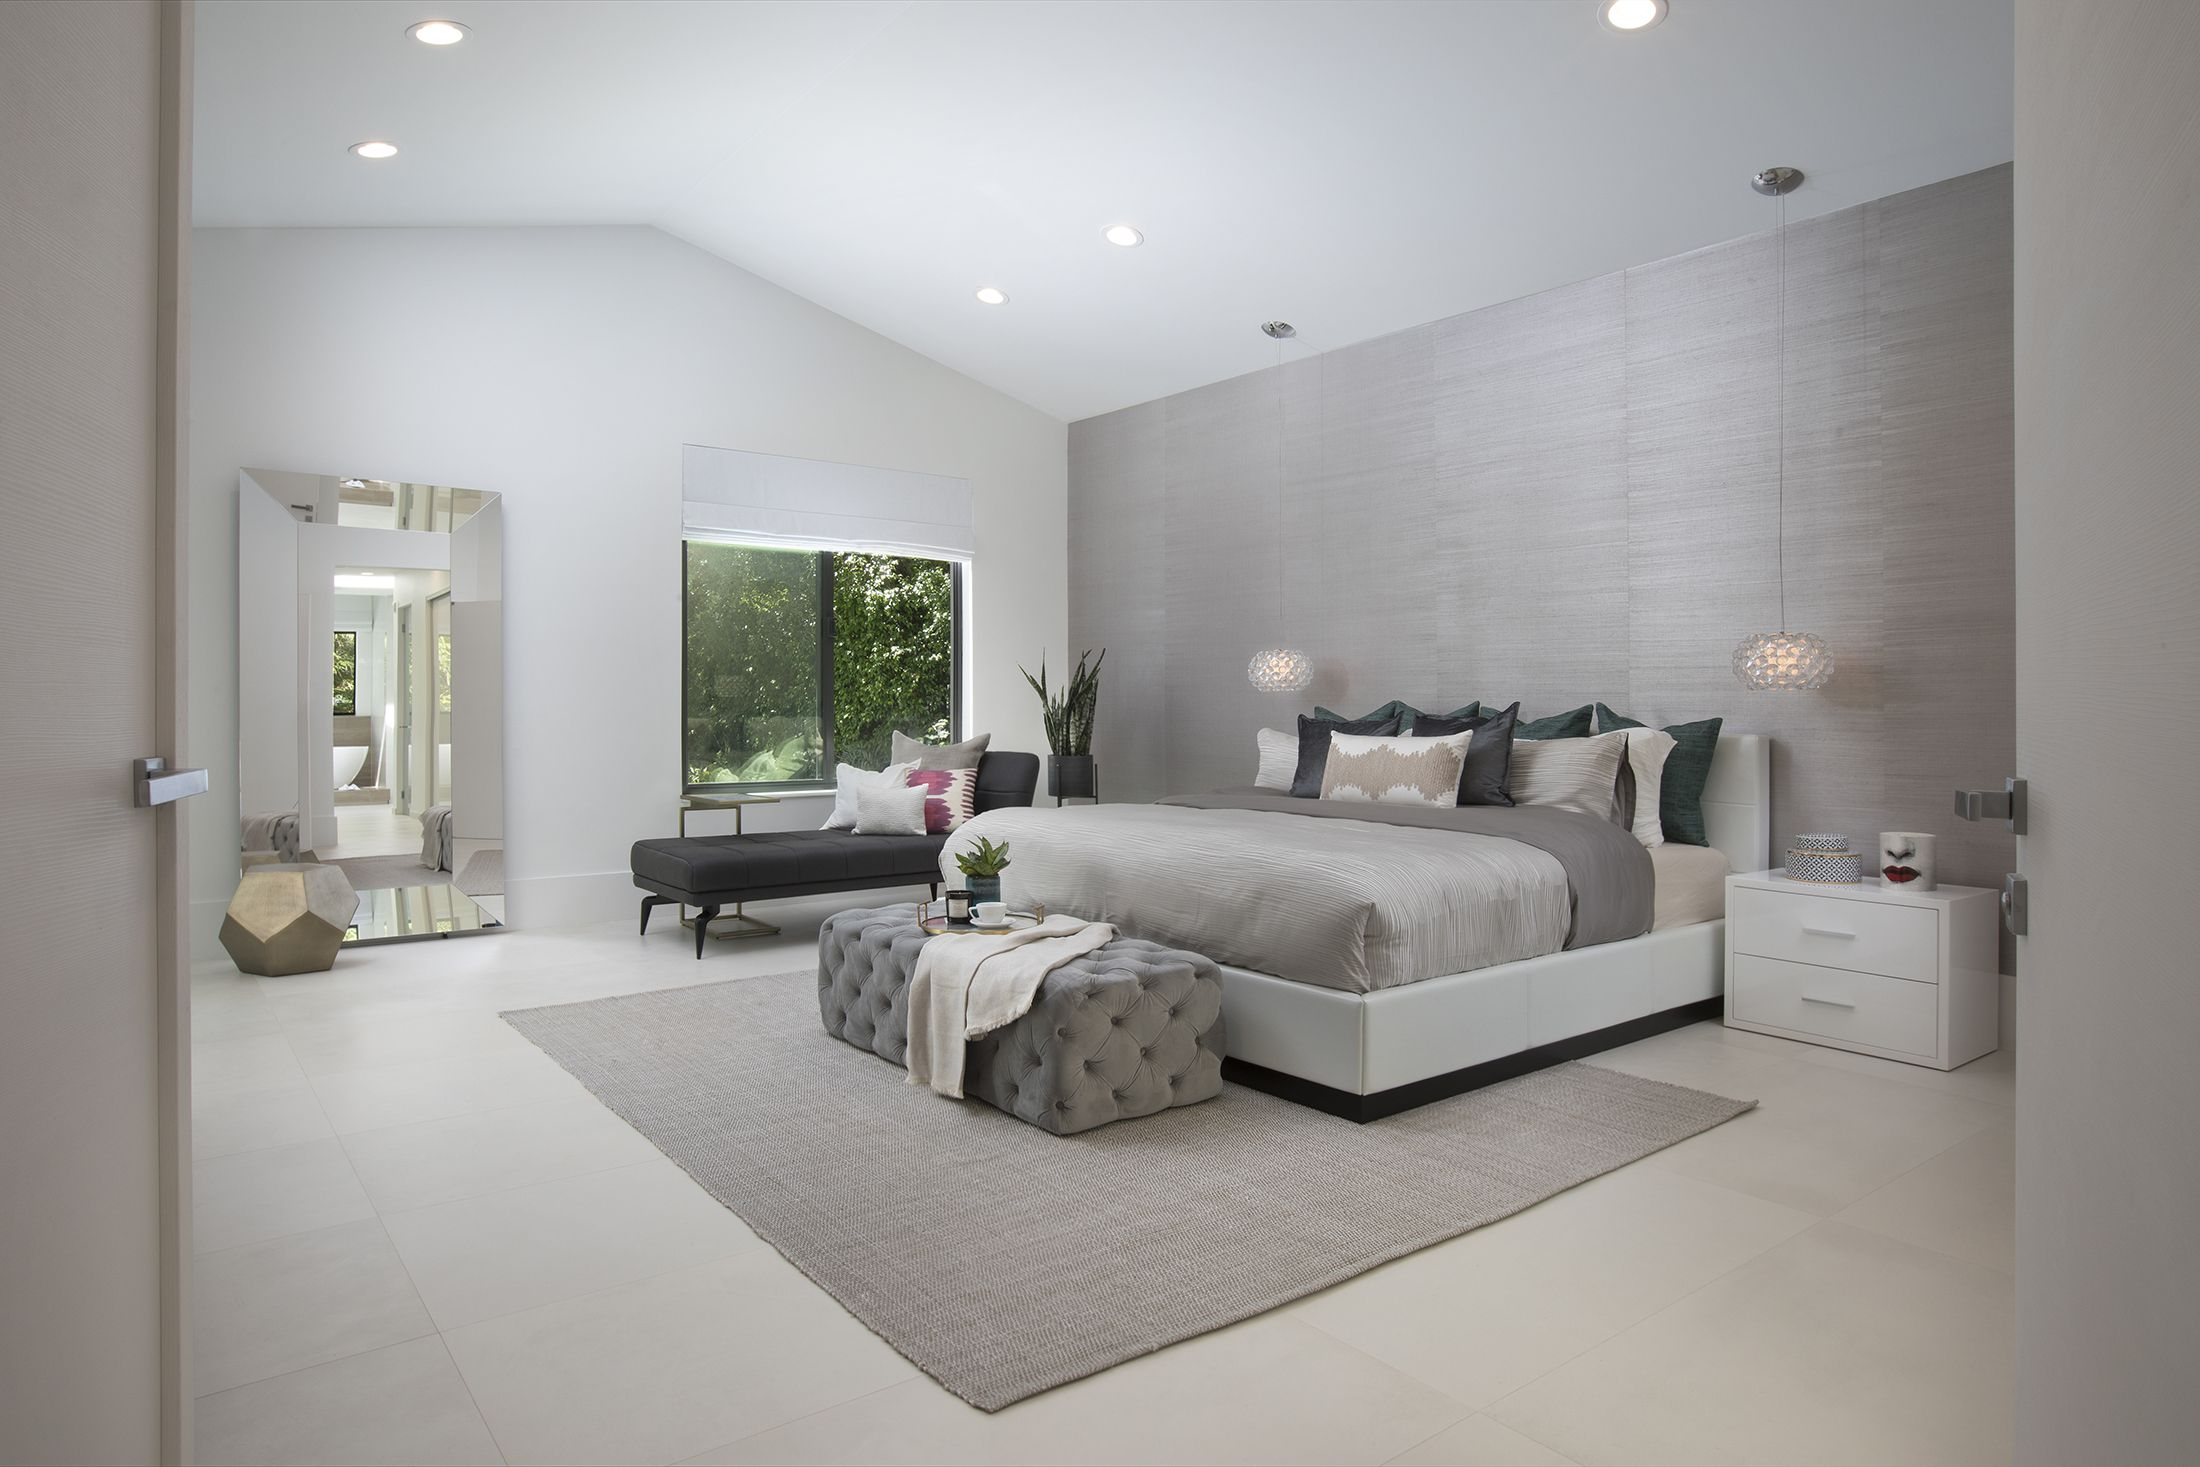 Modern Master Bedroom Ideas Residential Interior Design Project In C Gables Florida By Dkor Interiors Gem Cute Side Table Antique Br West